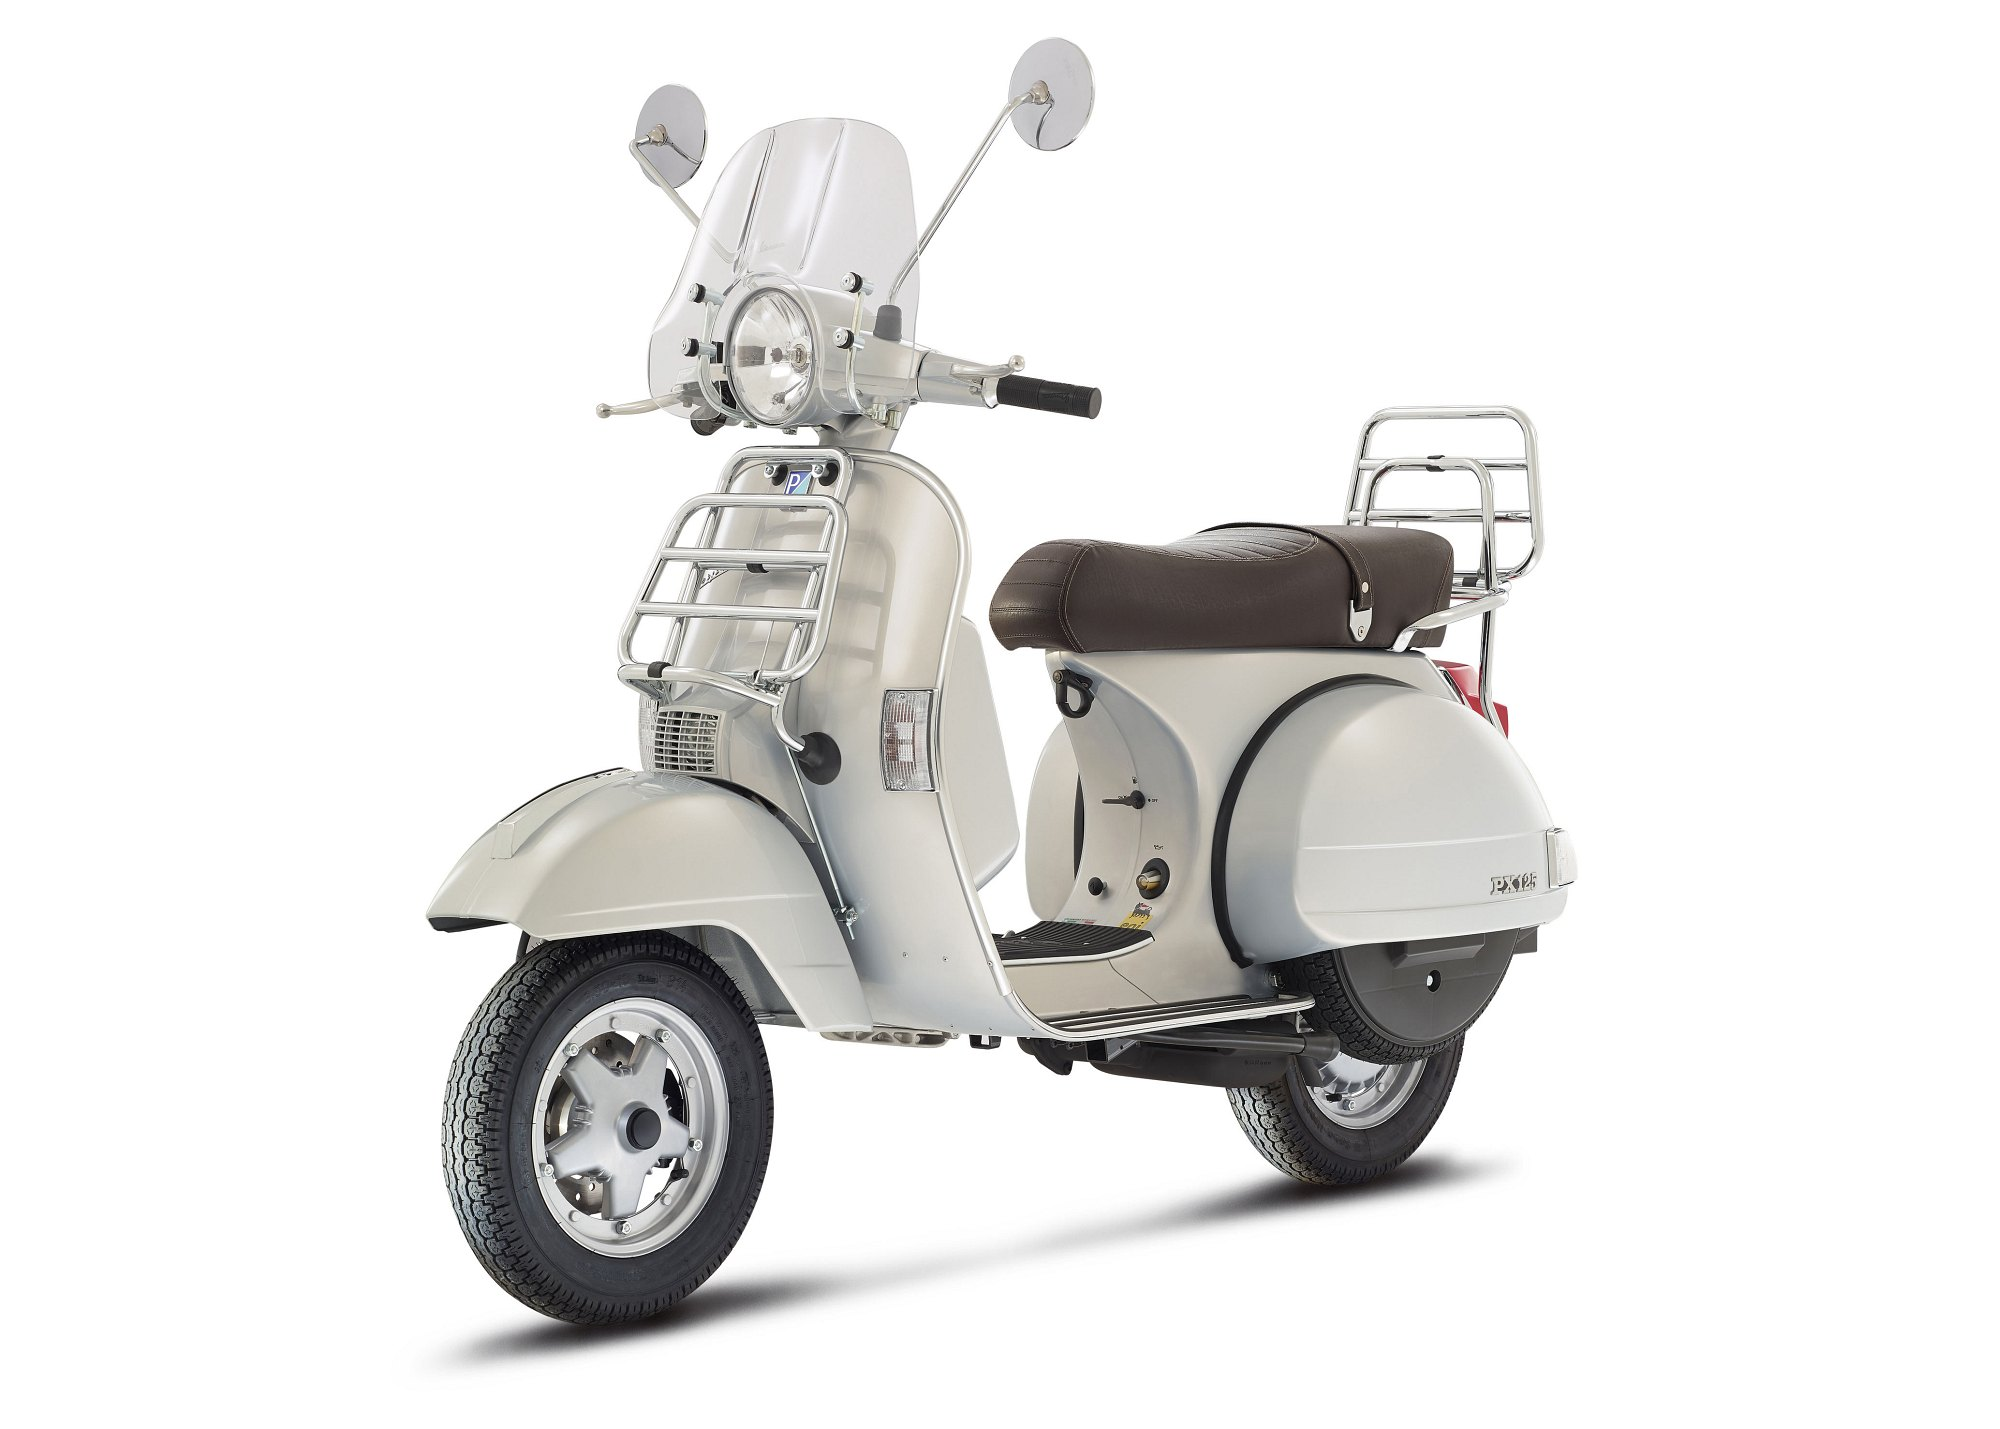 vespa px 125 touring all technical data of the model px. Black Bedroom Furniture Sets. Home Design Ideas